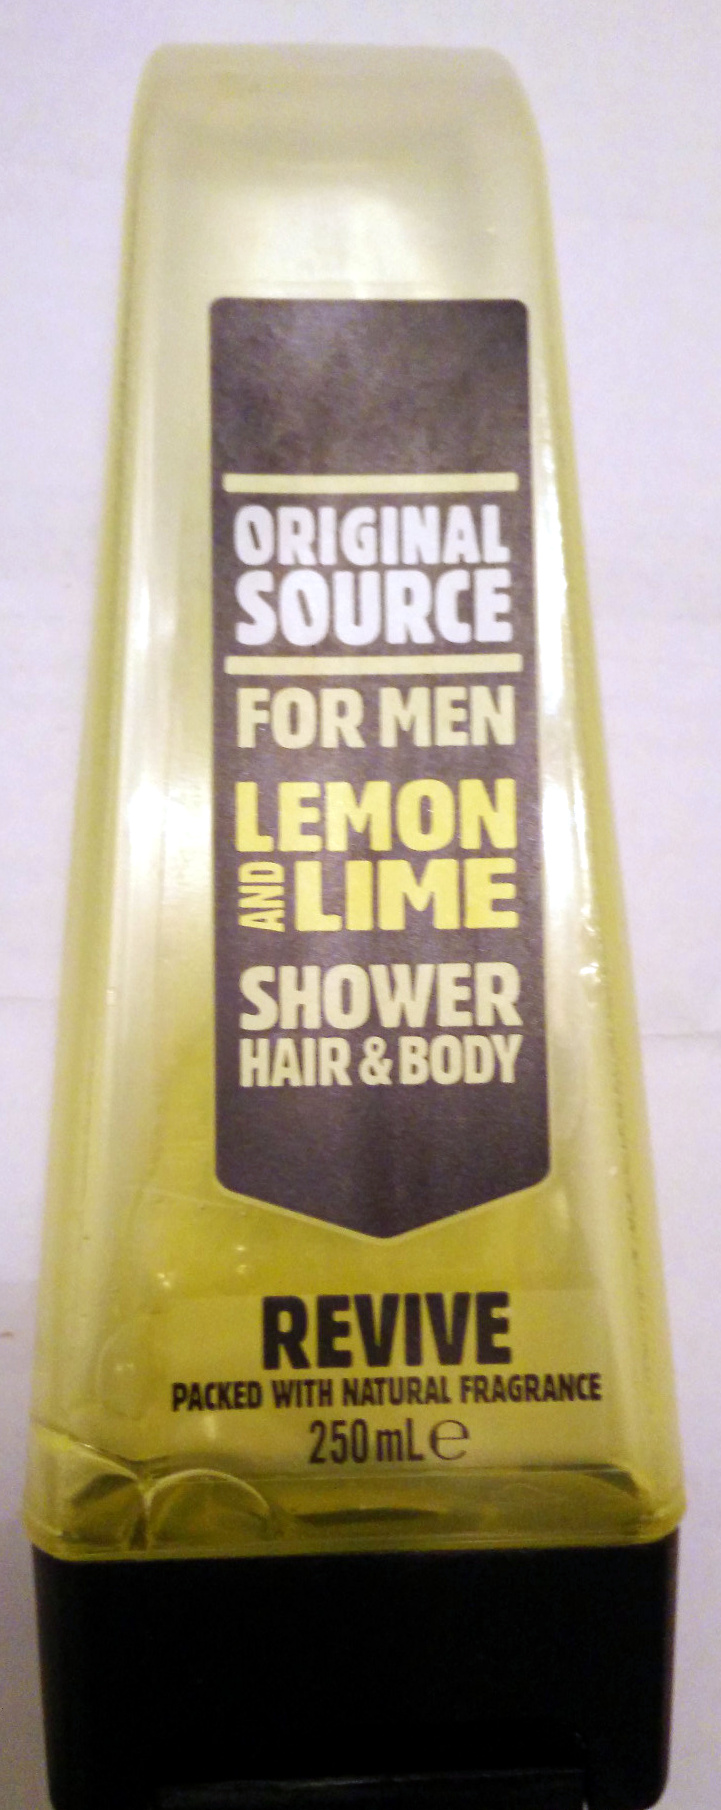 Original Source Lemon and Lime Revive - Product